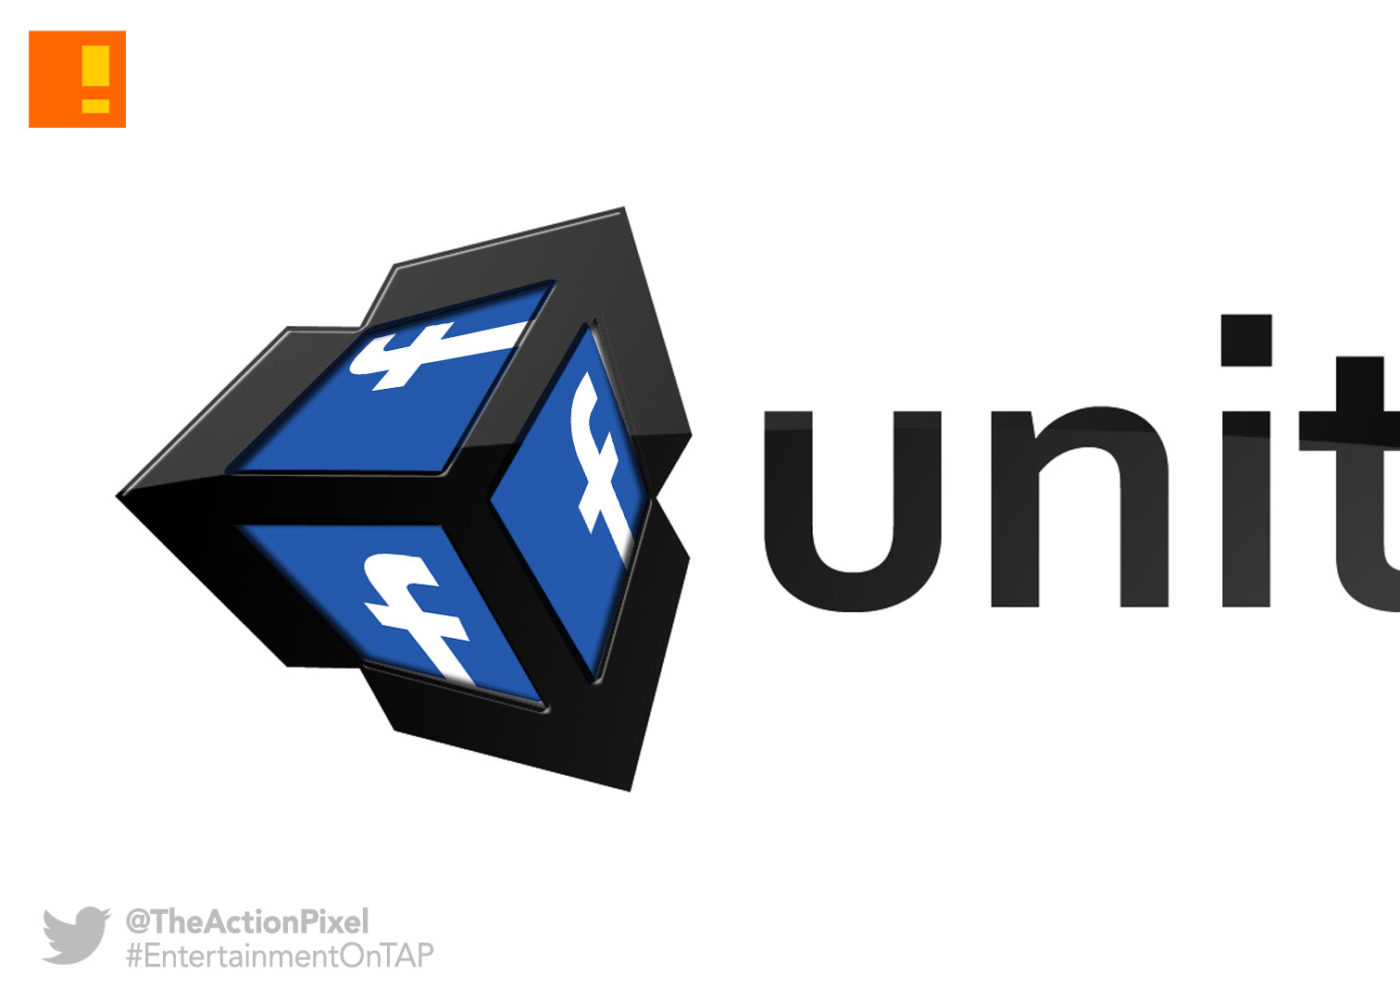 unity, facebook, pc, gaming , platform, entertainment on tap,the action pixel, @theactionpixel